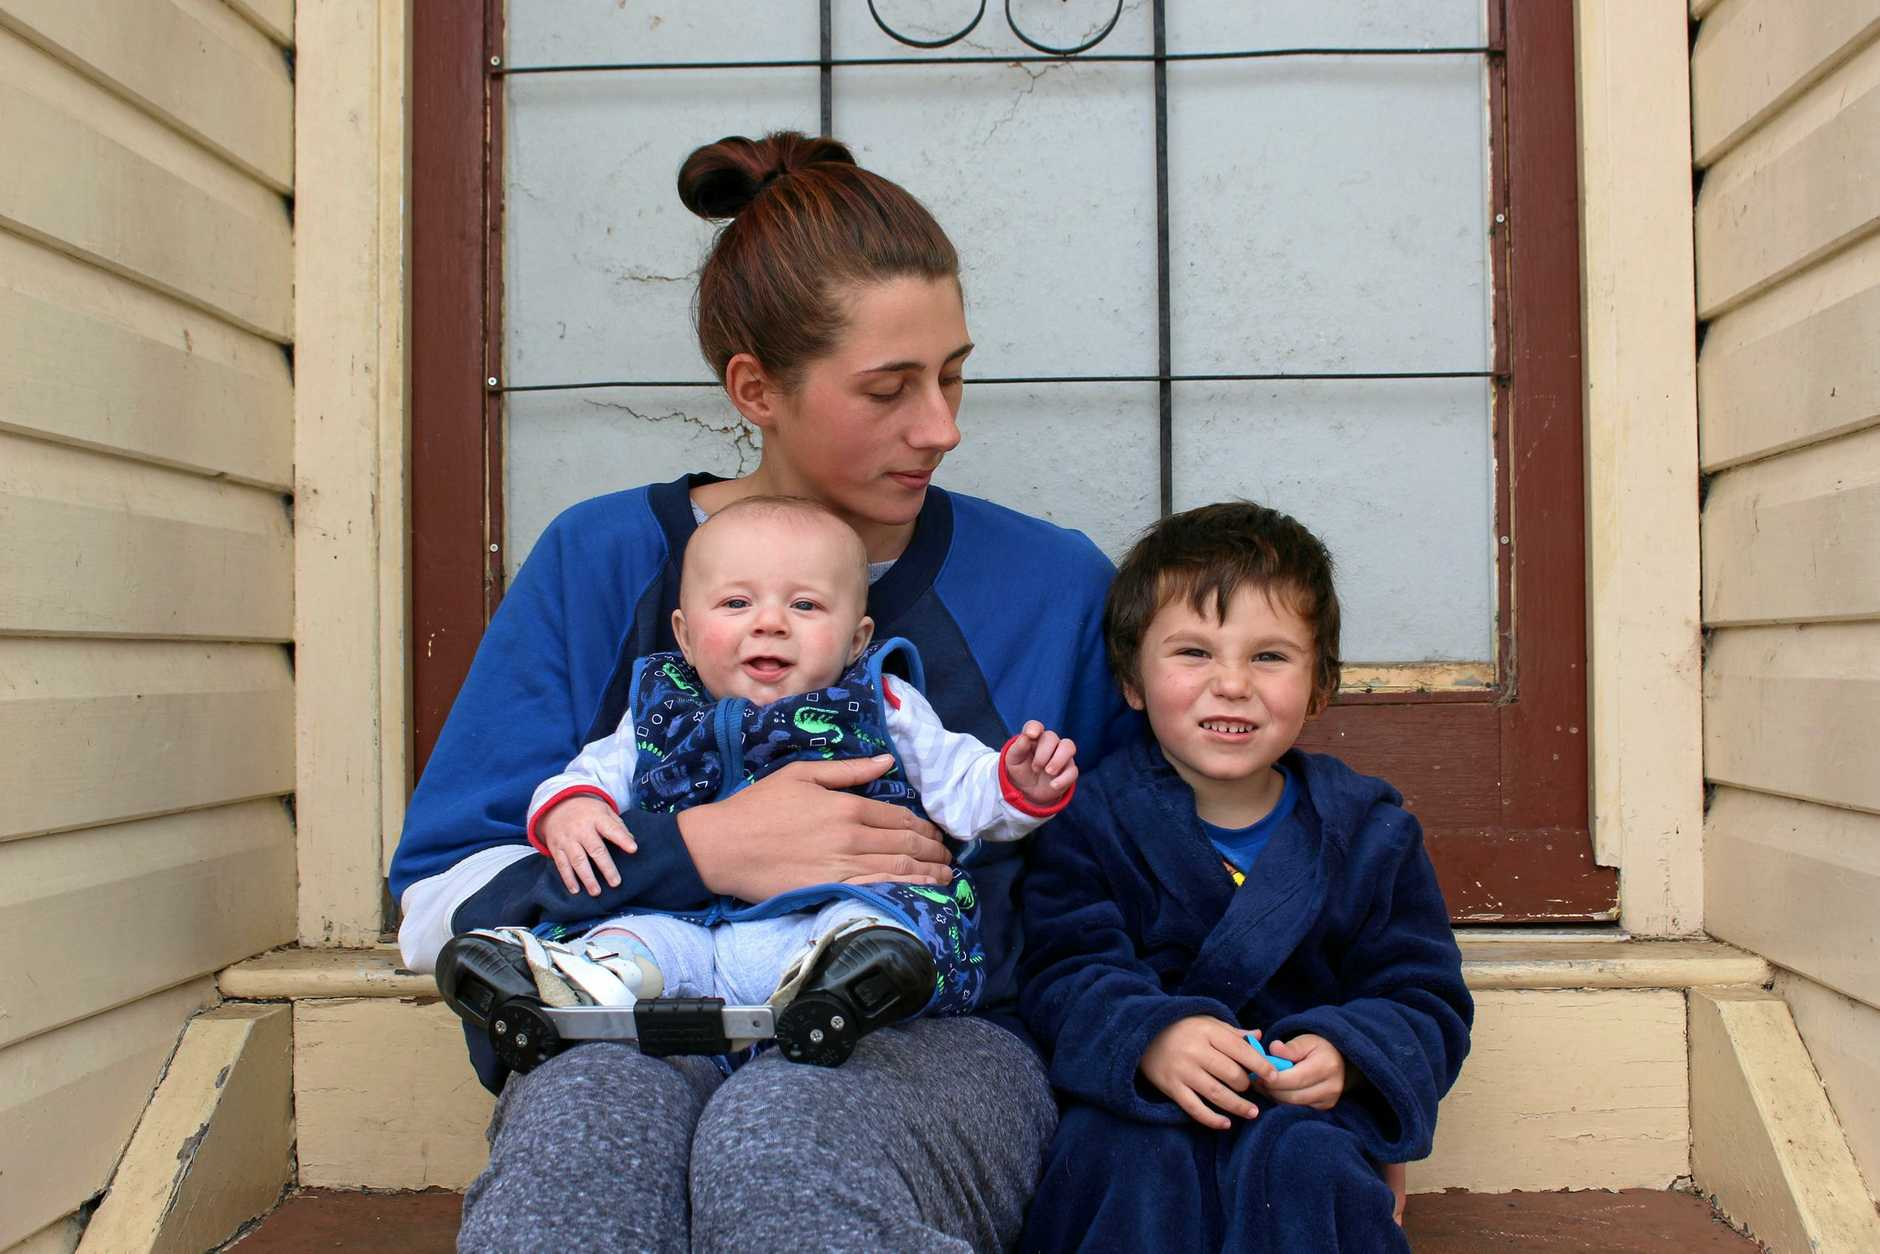 NO ROOM TO RENT: Warwick mother-of-two Kaliya Beverley has been tirelessly filling out rental applications to find a safe place to raise her kids, but two years she hasn't had any luck.